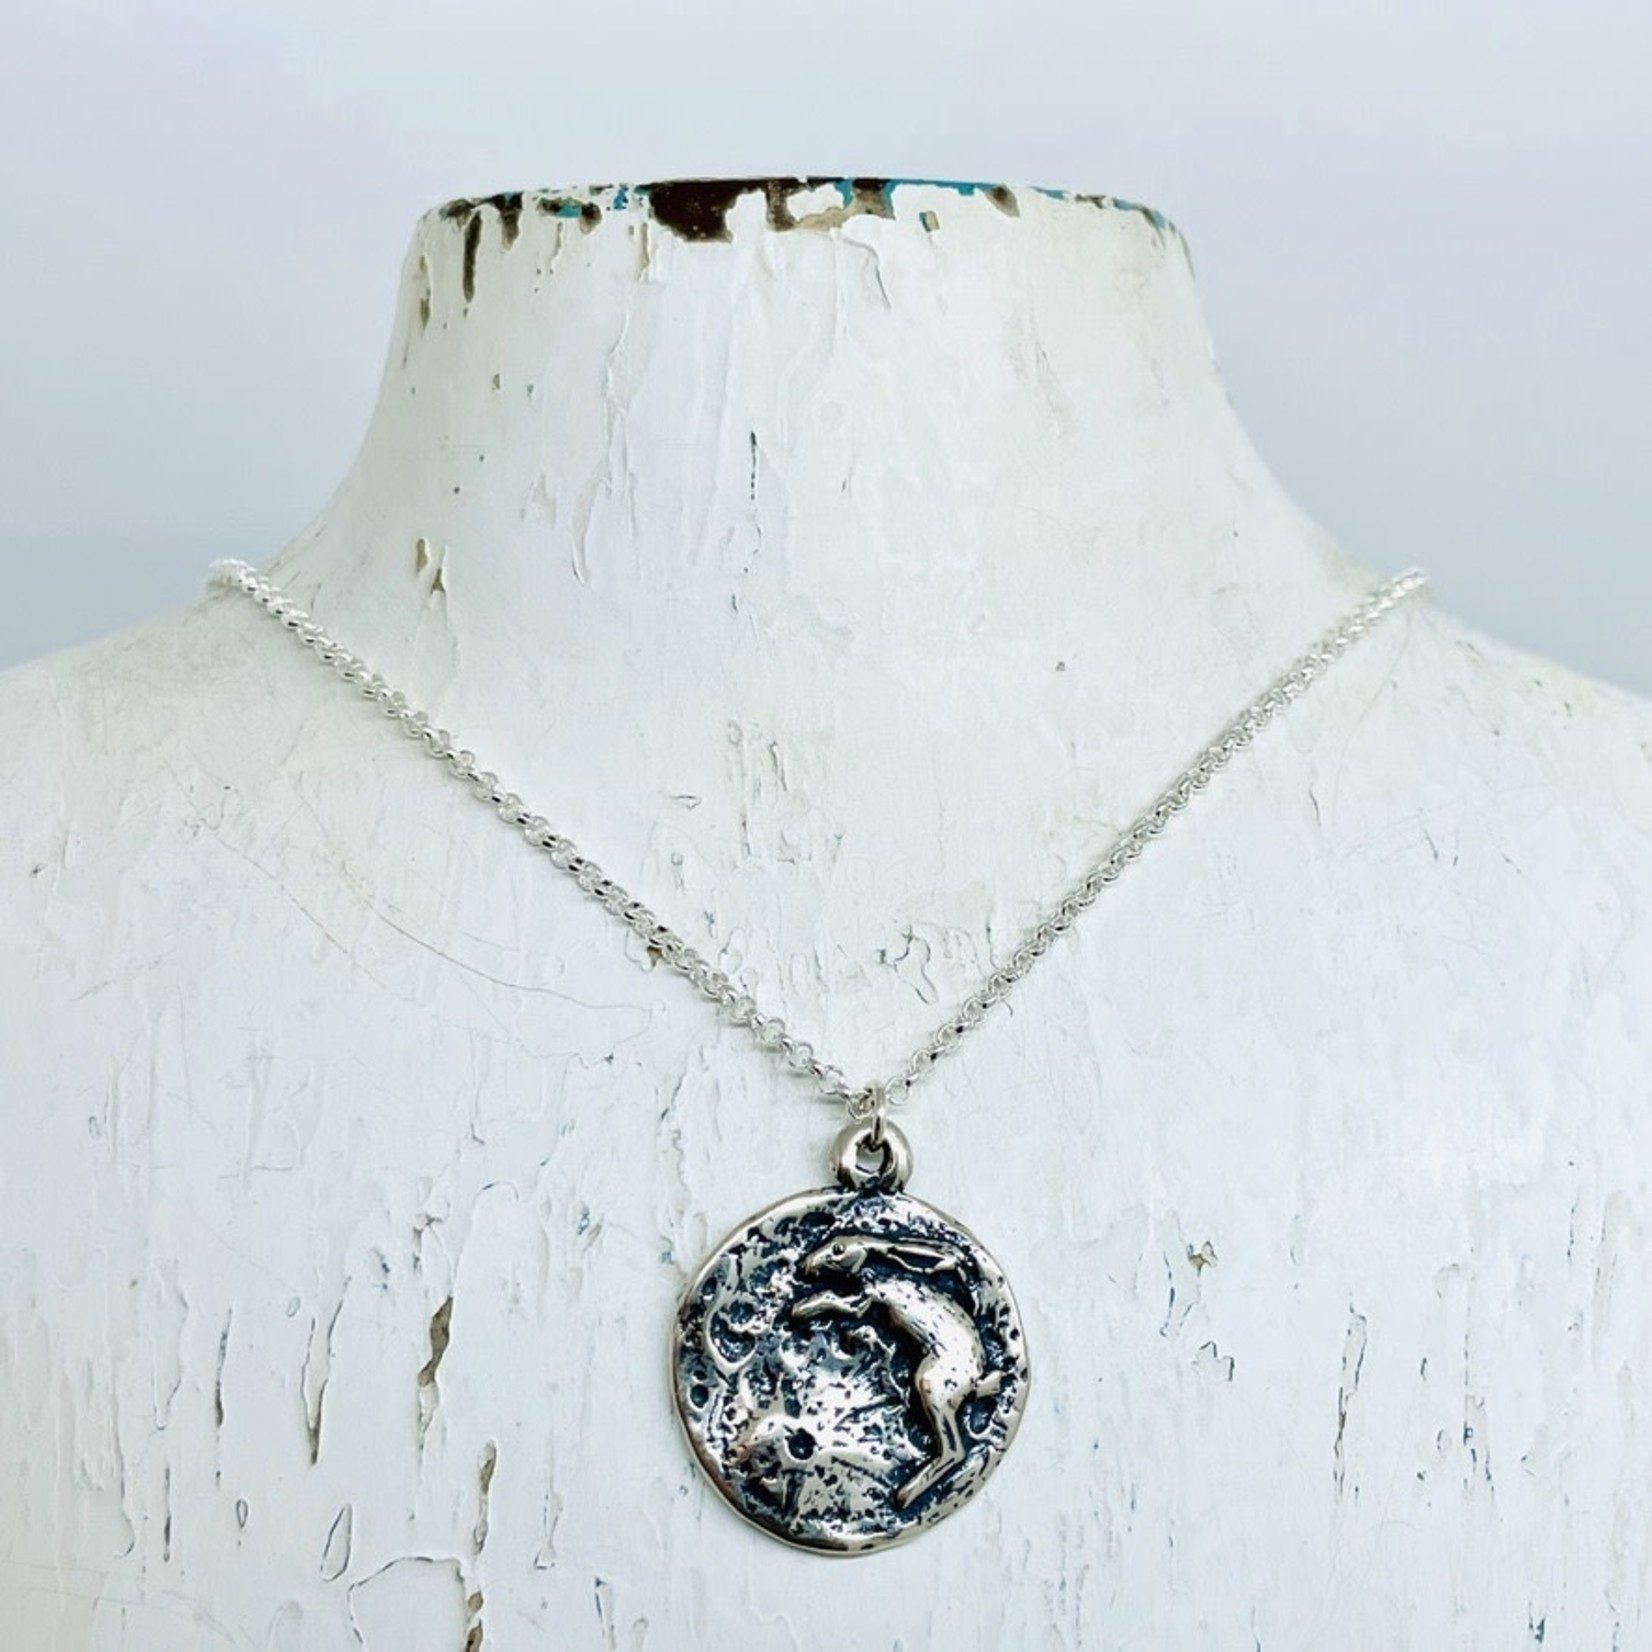 Silver Bramble Jewelry Handmade Rabbit in Moon Necklace in Silver